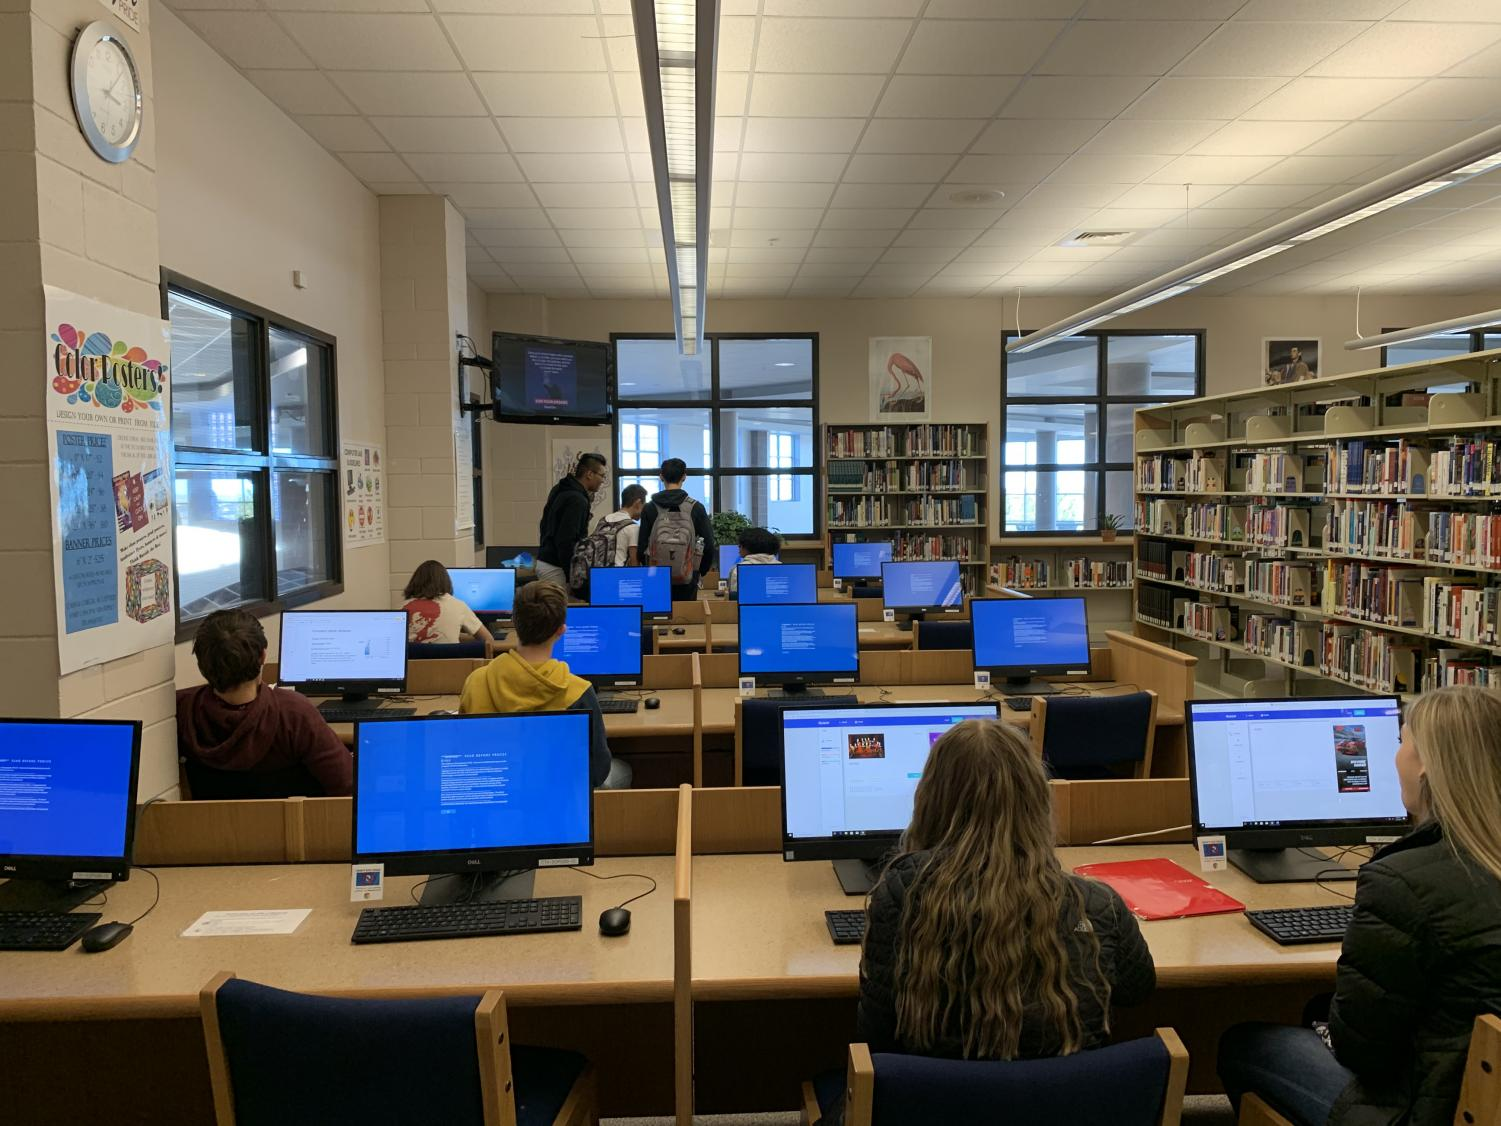 With laptops and phones in every hand, the internet is in use at any given moment. In CT's own library, the desktops hum while students browse, work, and play. Understanding safer ways to participate in those activities is an essential for them to learn.